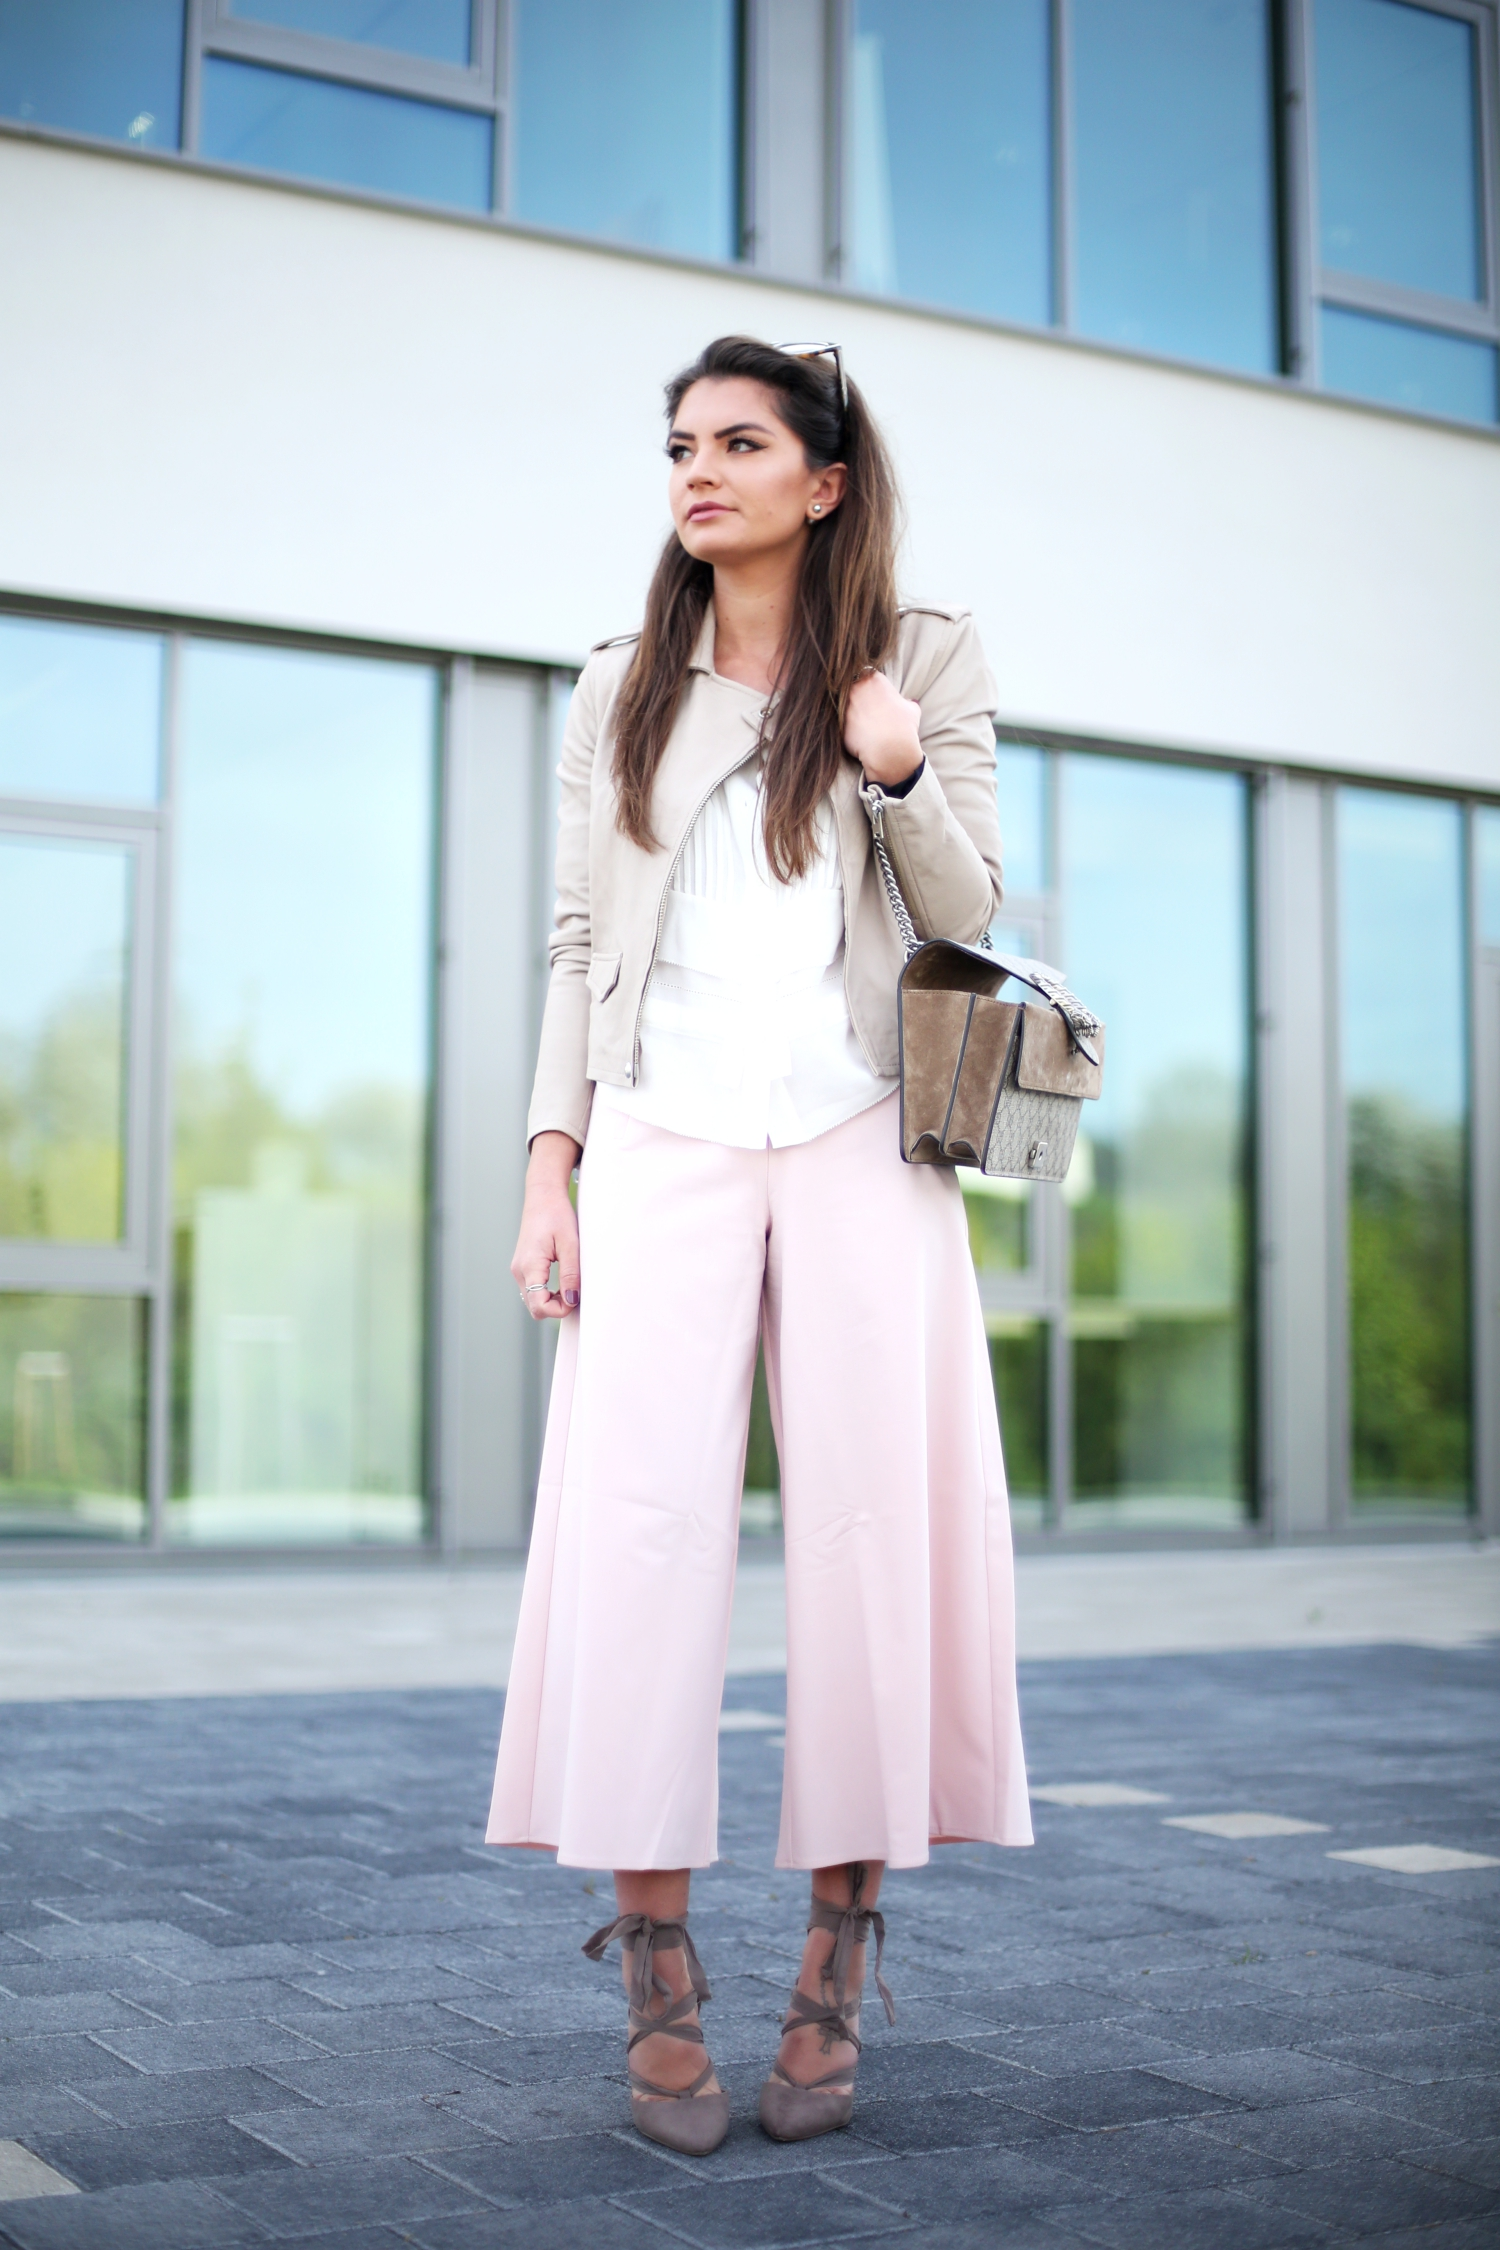 outfit-spring-look-culotte-pink-iro-paris-german-fashionblogger-trend